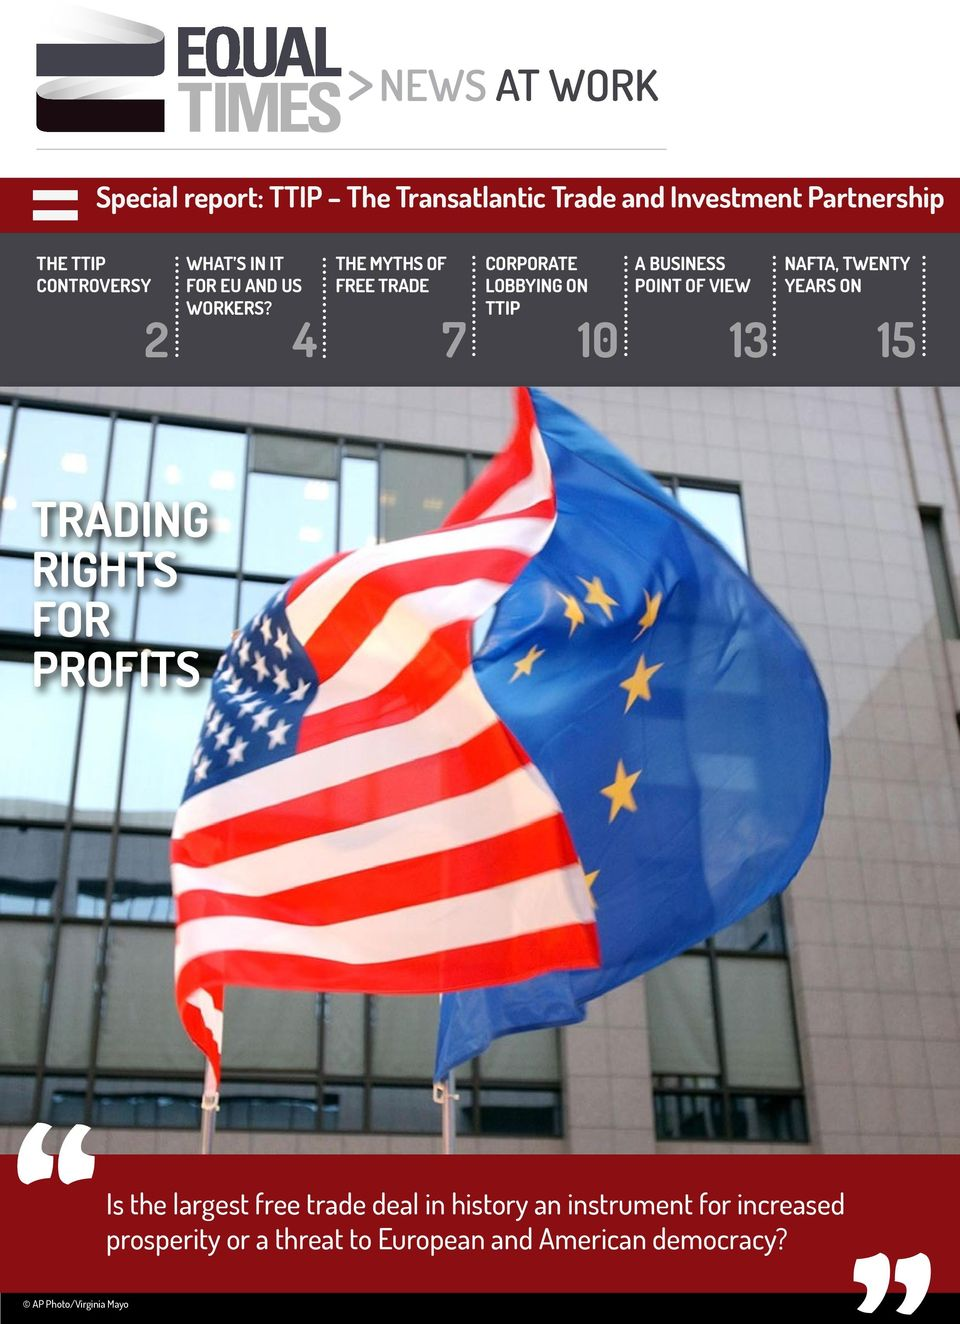 The myths of free trade Corporate lobbying on TTIP A business point of view NAFTA, twenty years on 2 4 7 10